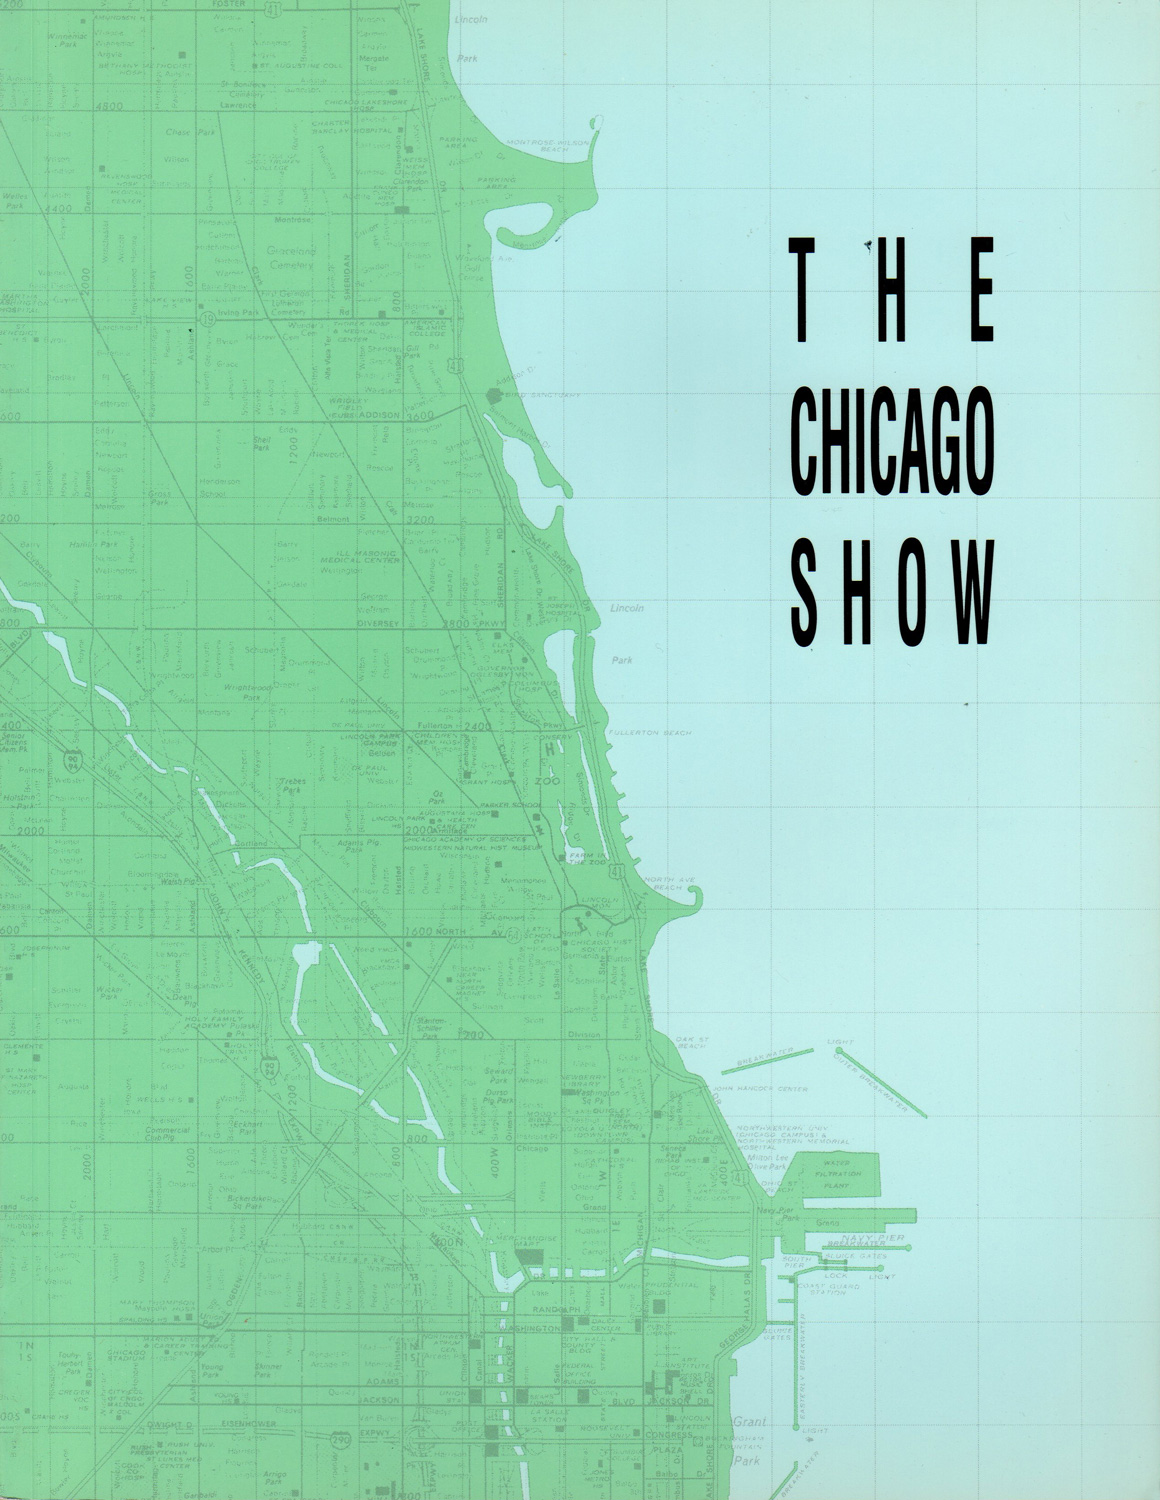 The Chicago Show.  Organized by the Department of Cultural Affairs, The Art Institute of Chicago and the Museum of Contemporary Art, this catalog documents an exhibition juried by Neal Benezra, Kenneth C. Burkhart and Lynne Warren. The exhibit was shown at the Chicago Cultural Center in 1990.